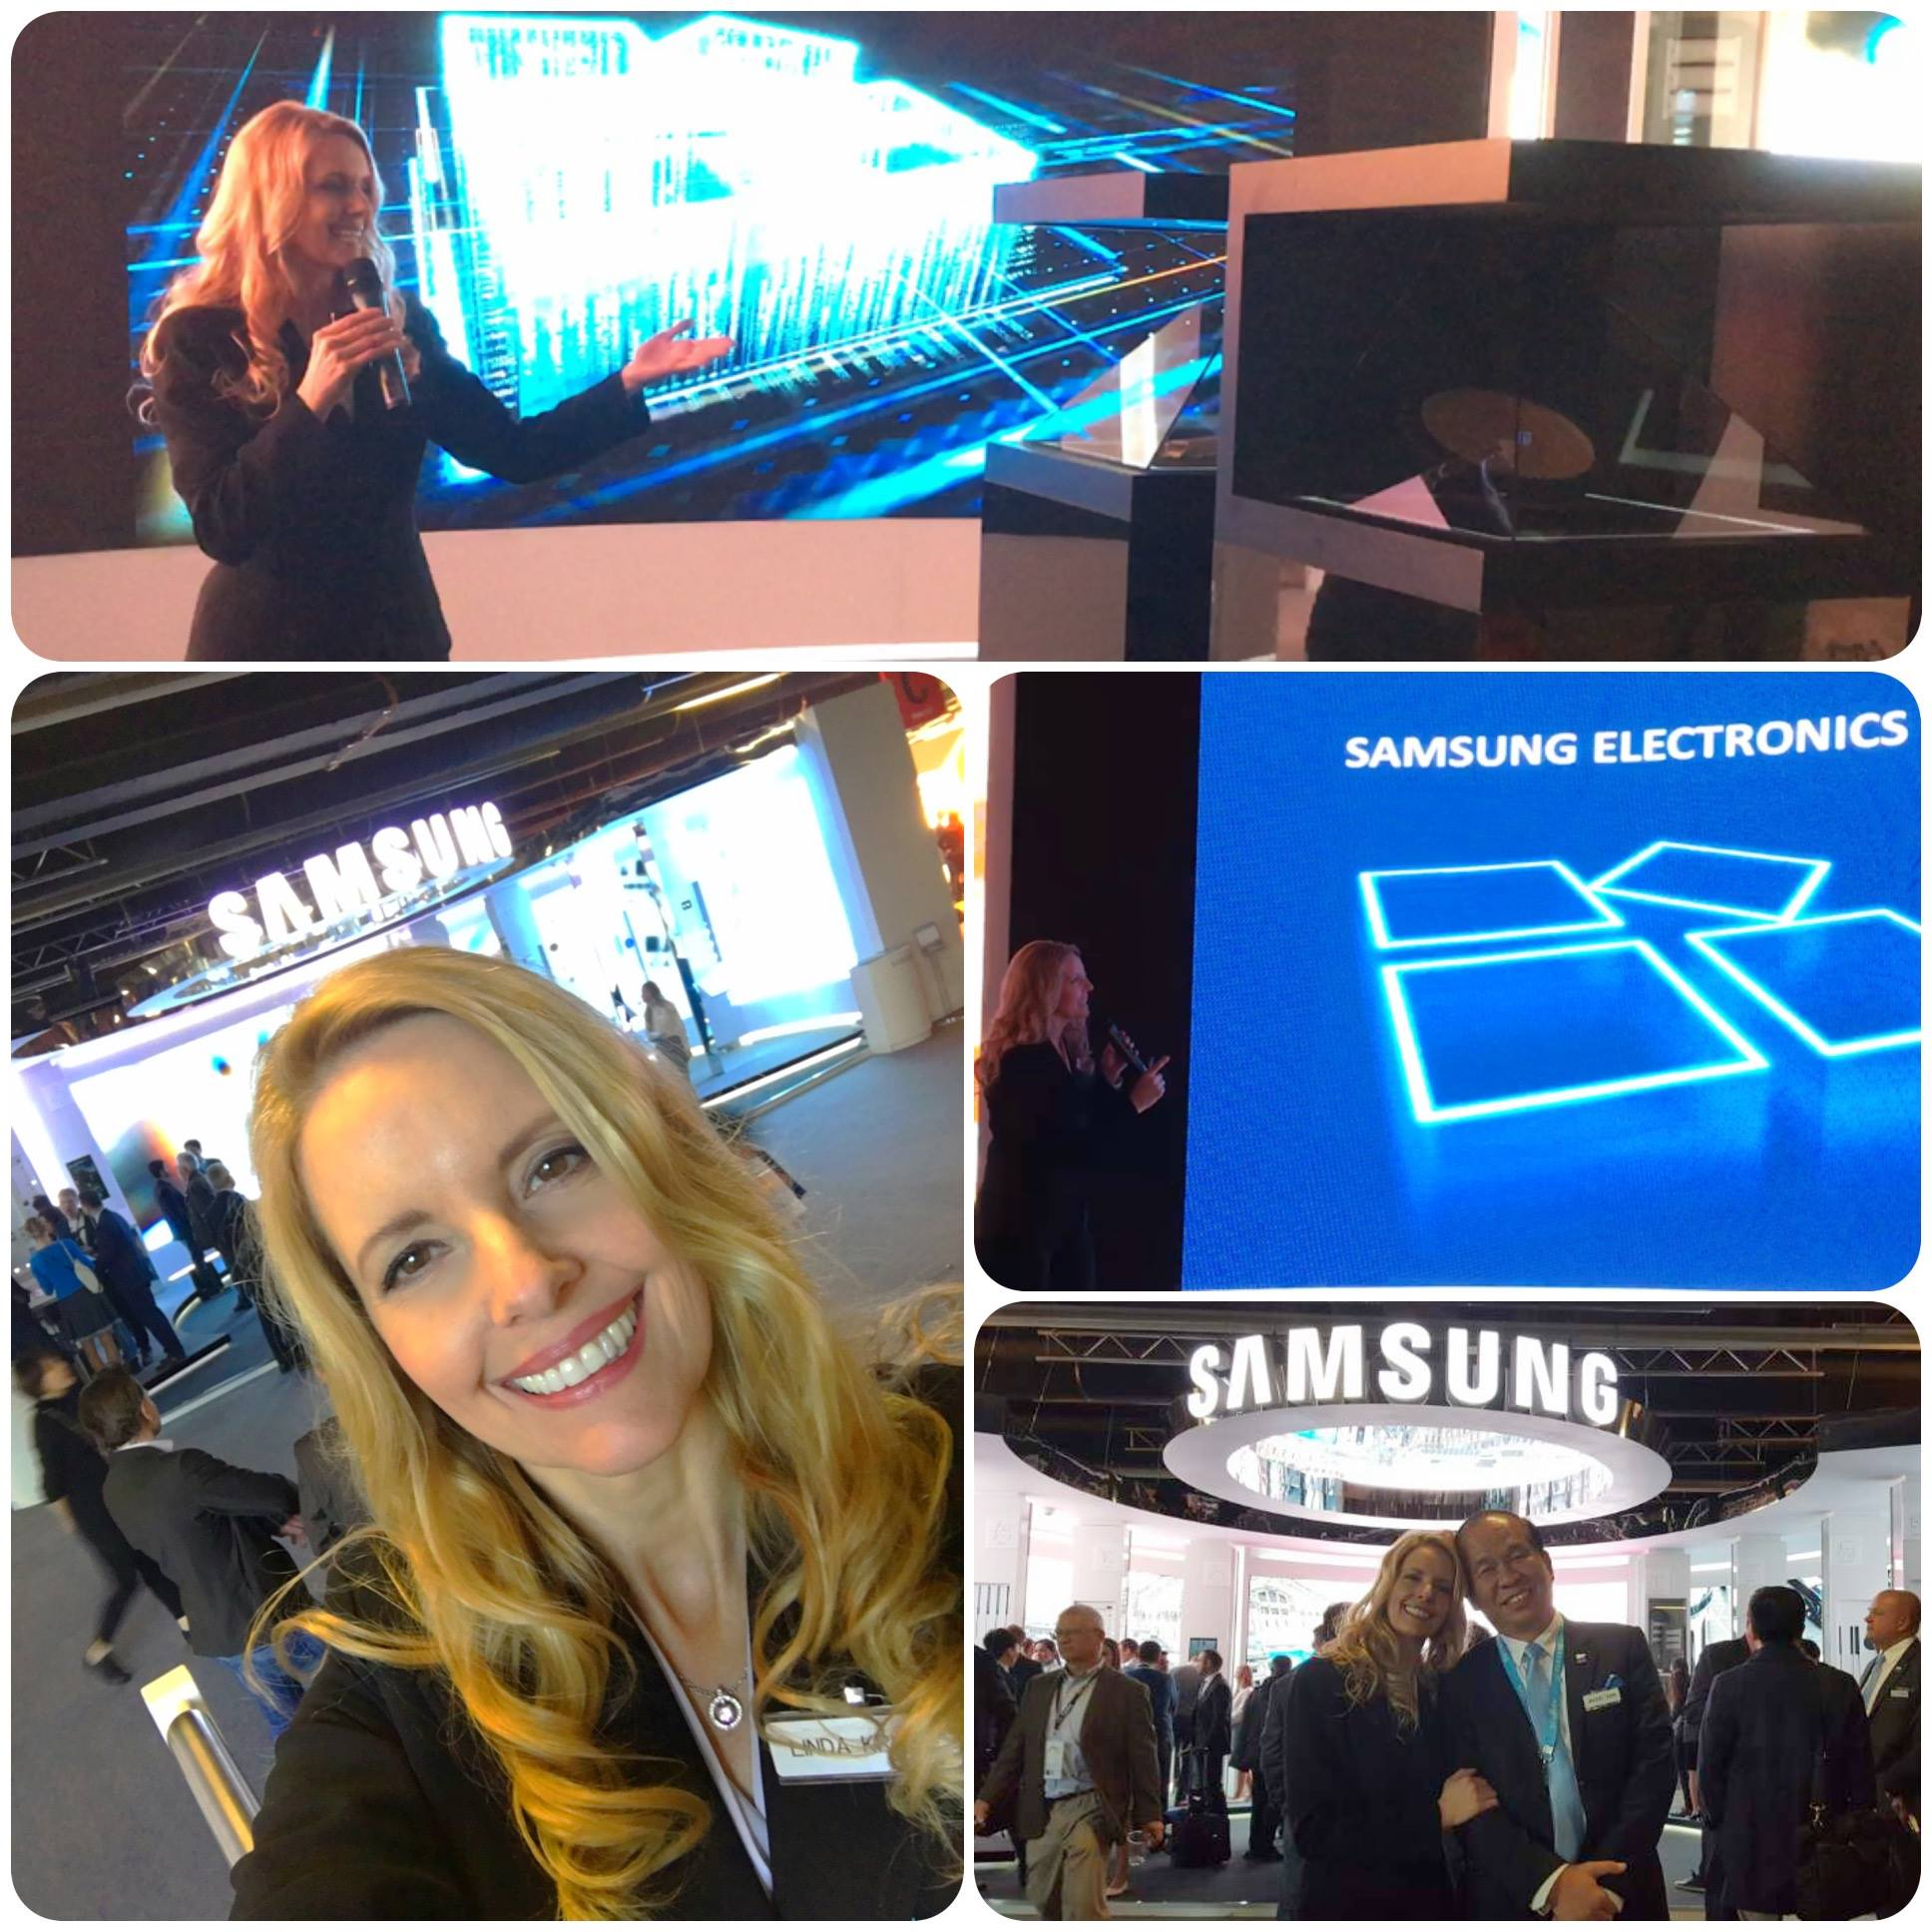 Speaking in Germany for Samsung